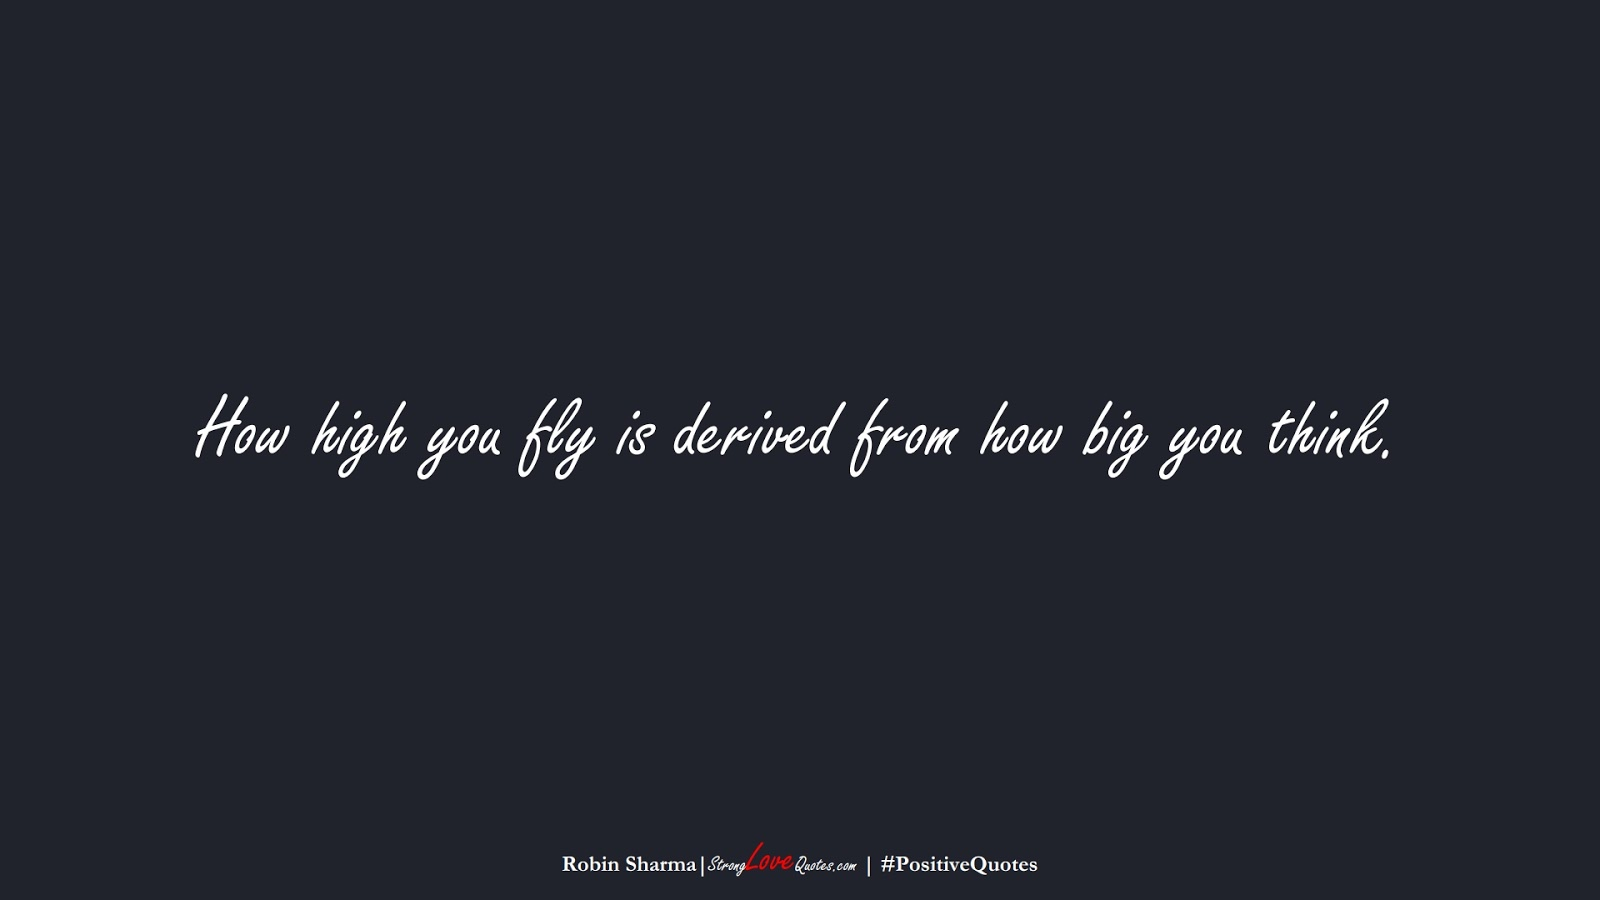 How high you fly is derived from how big you think. (Robin Sharma);  #PositiveQuotes